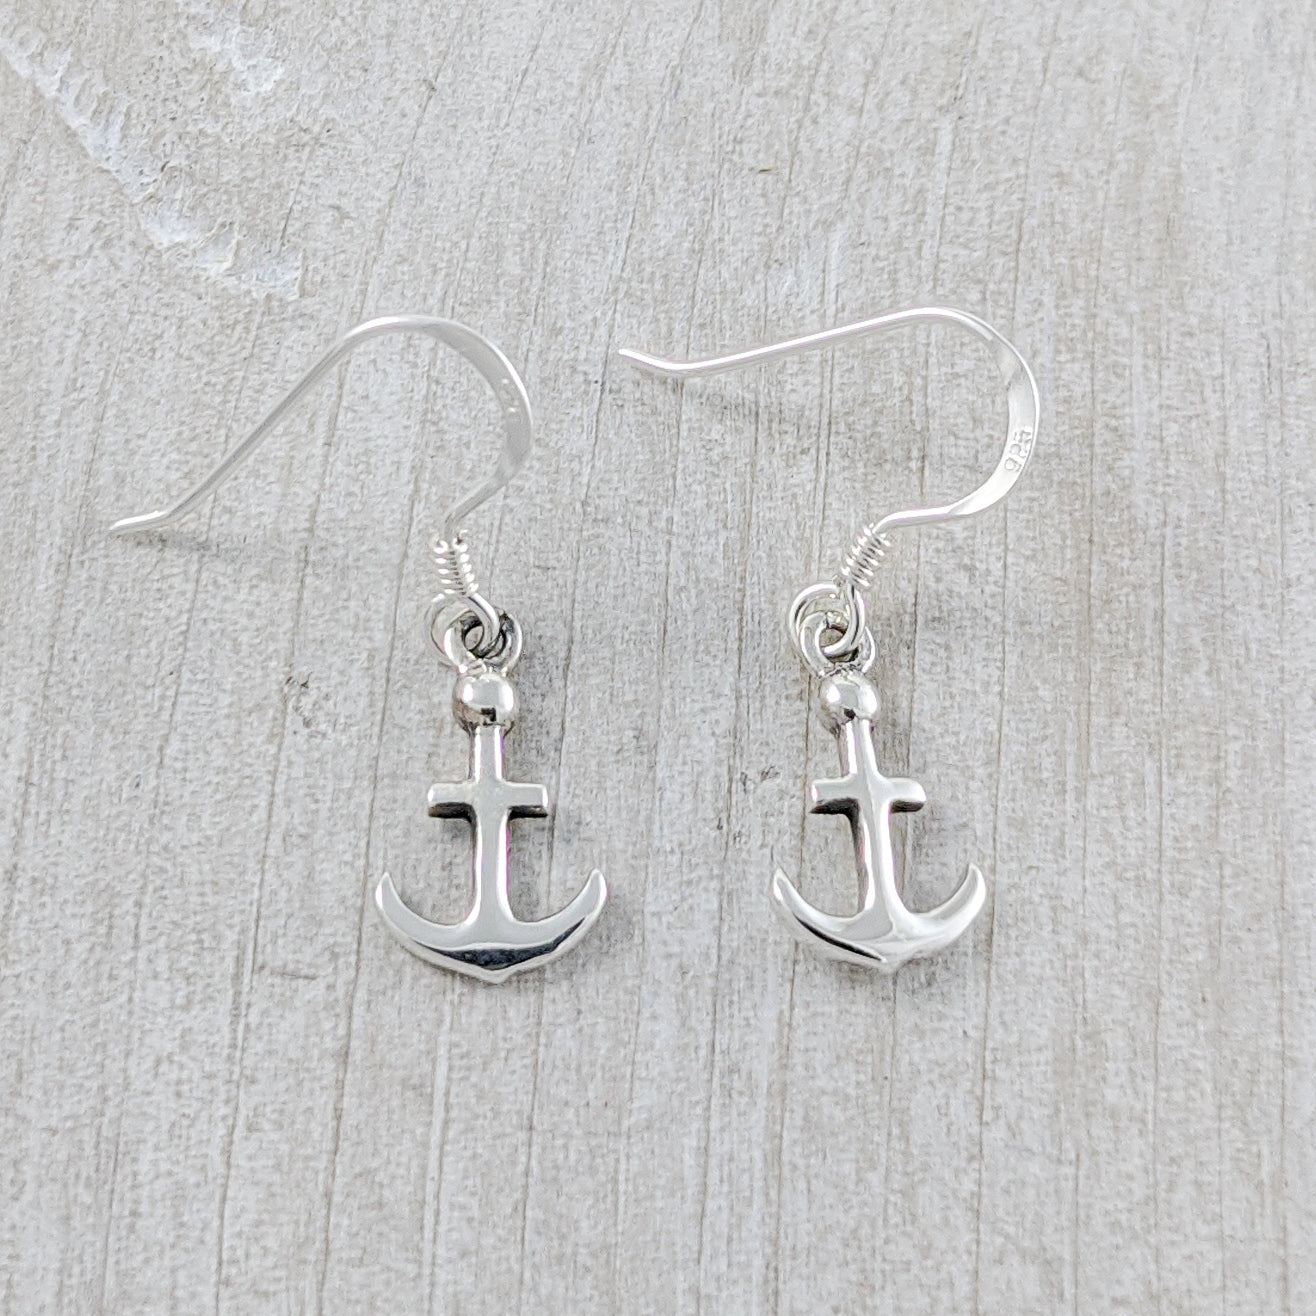 Little Anchors Earrings,  Sterling Silver